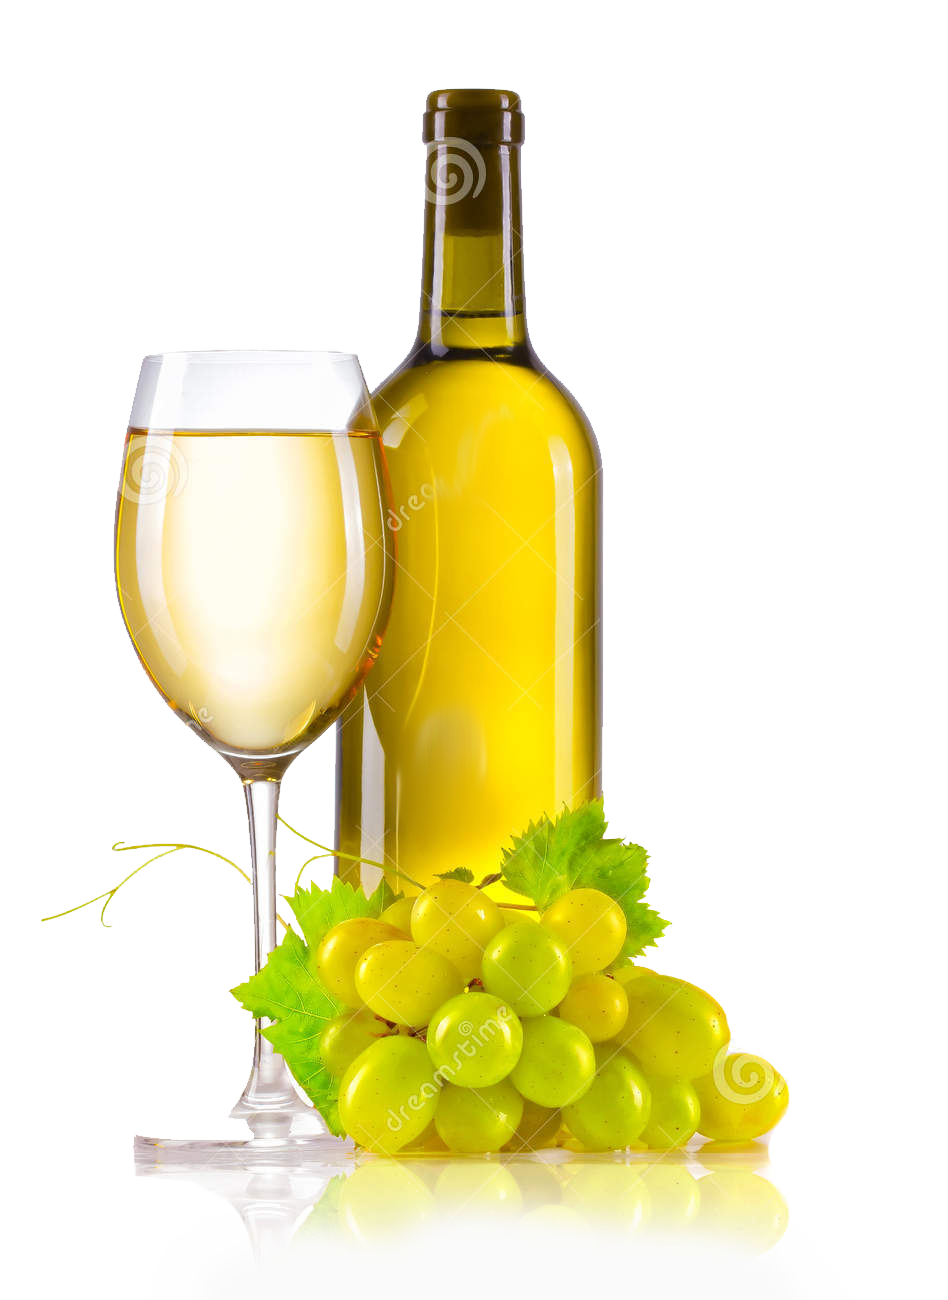 White wine bottle png. Red common grape vine